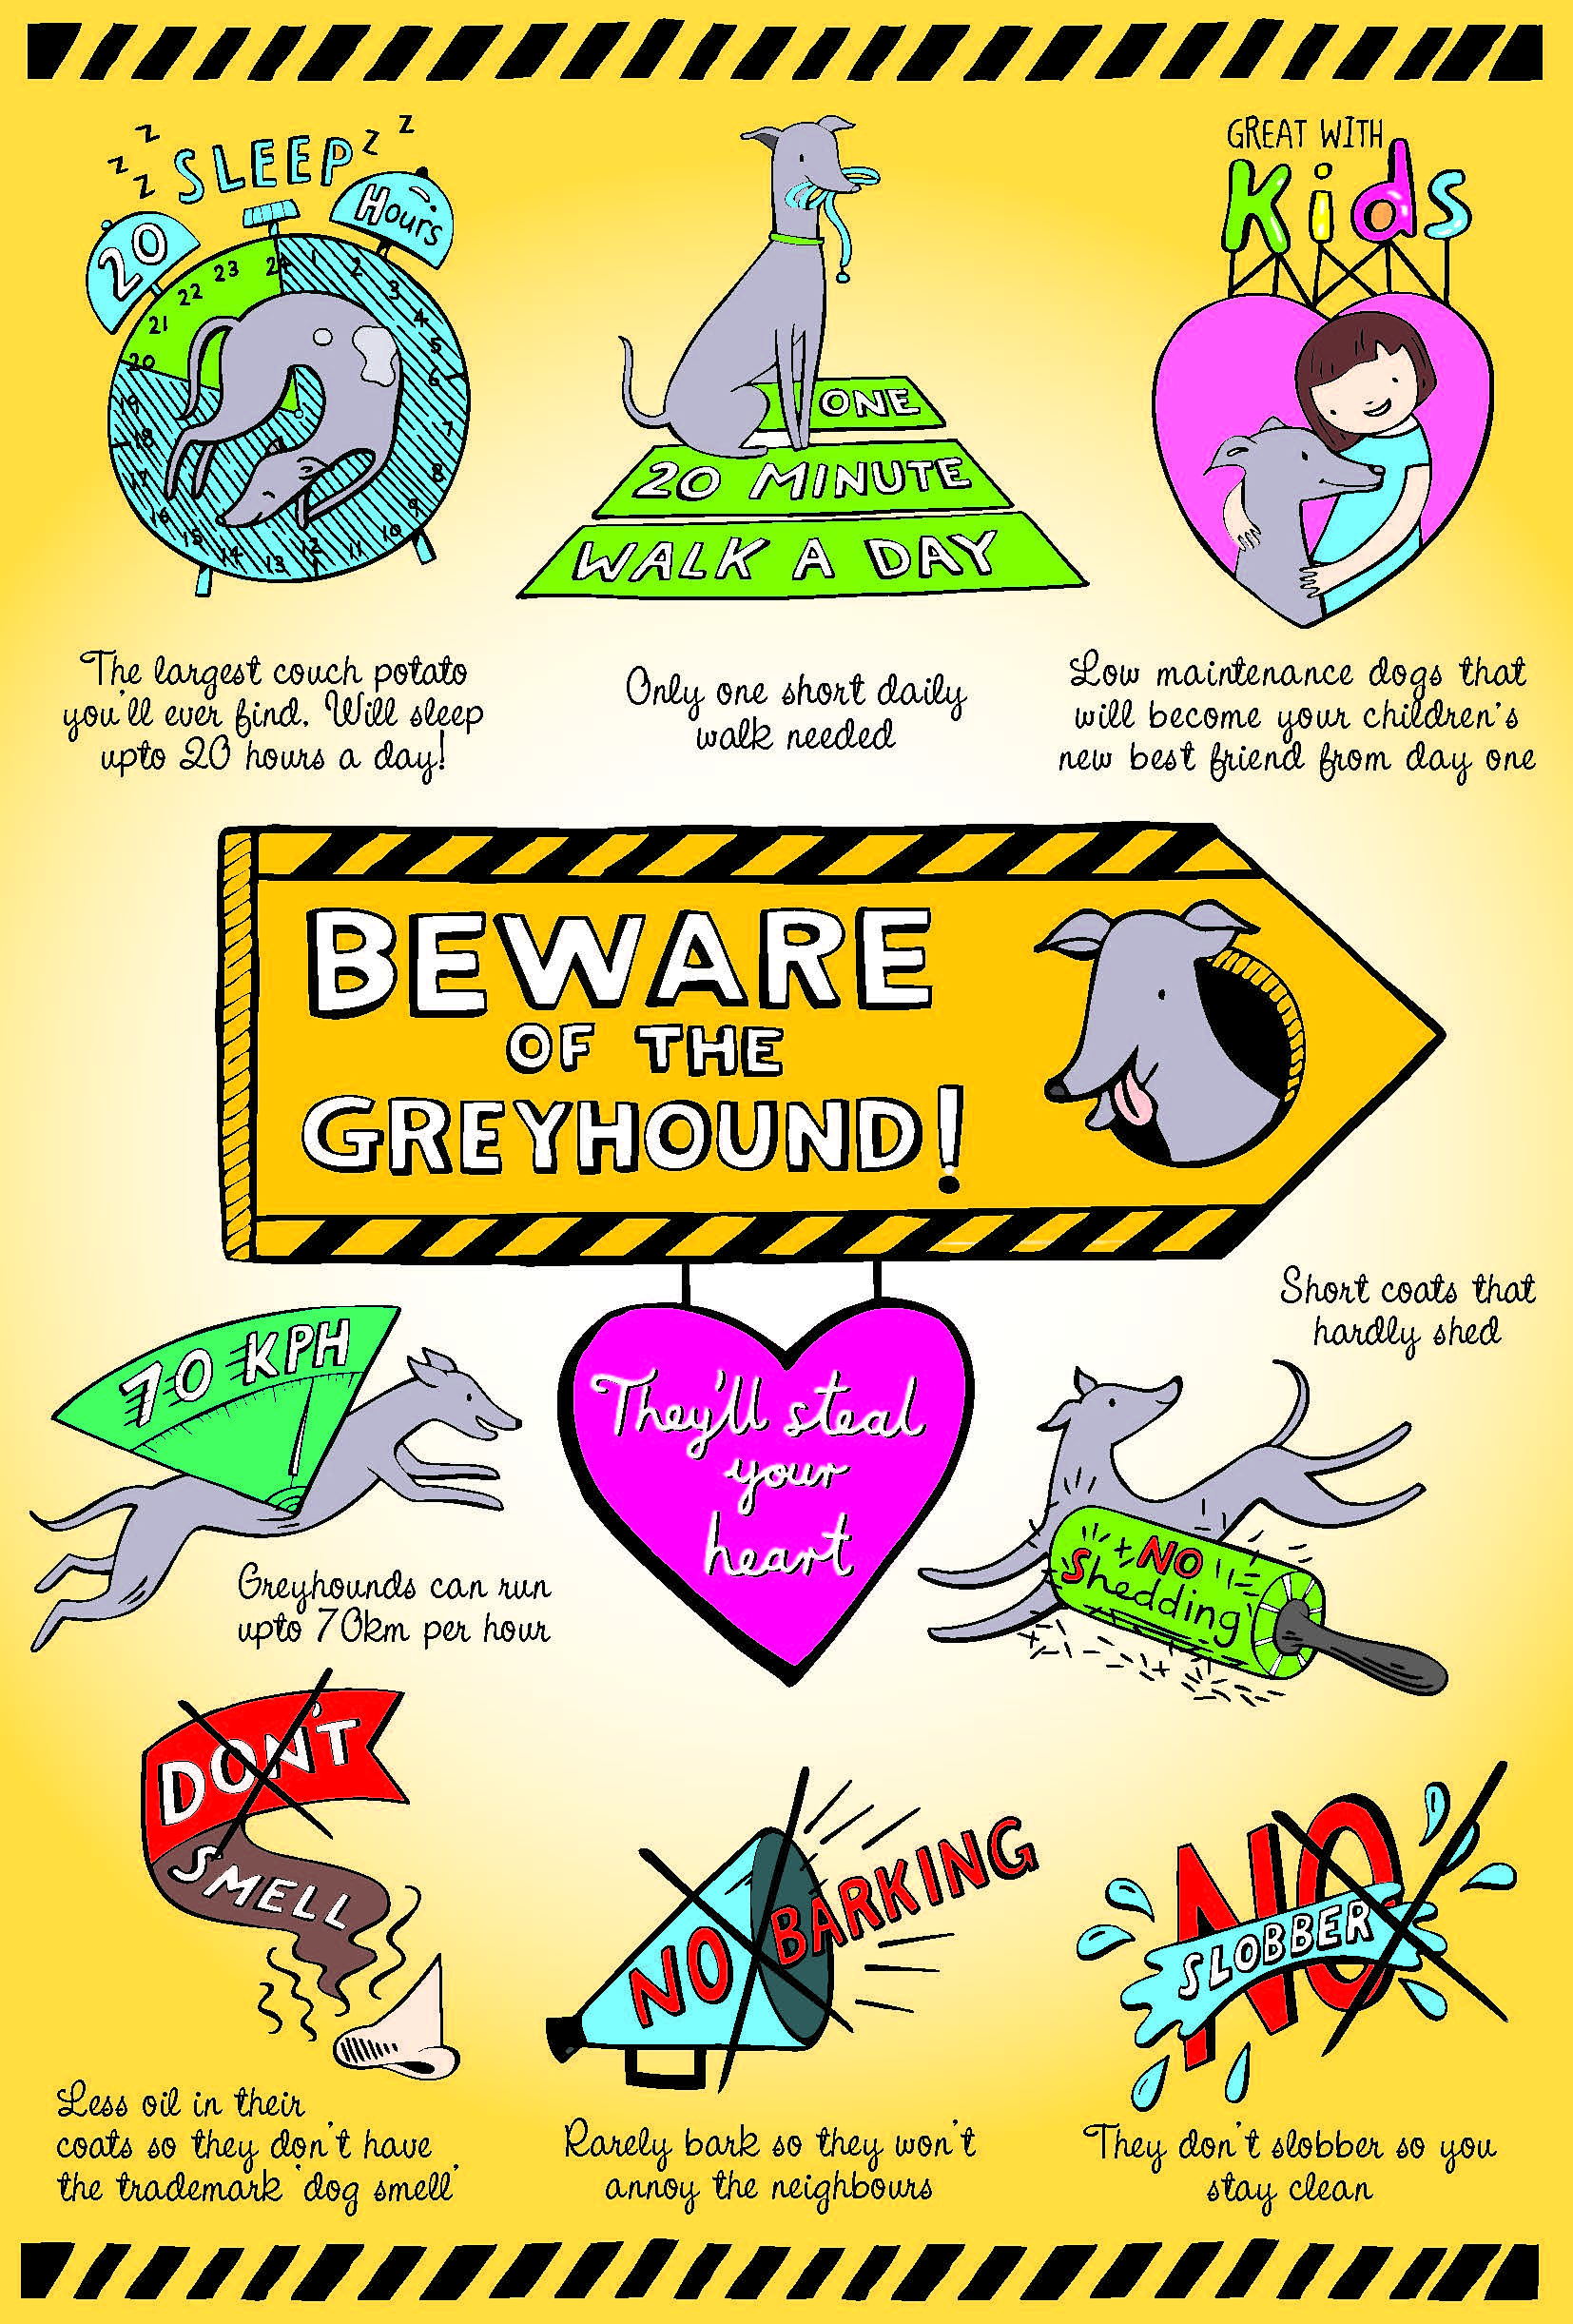 The Benefits of Owning a Greyhound [Infographic]